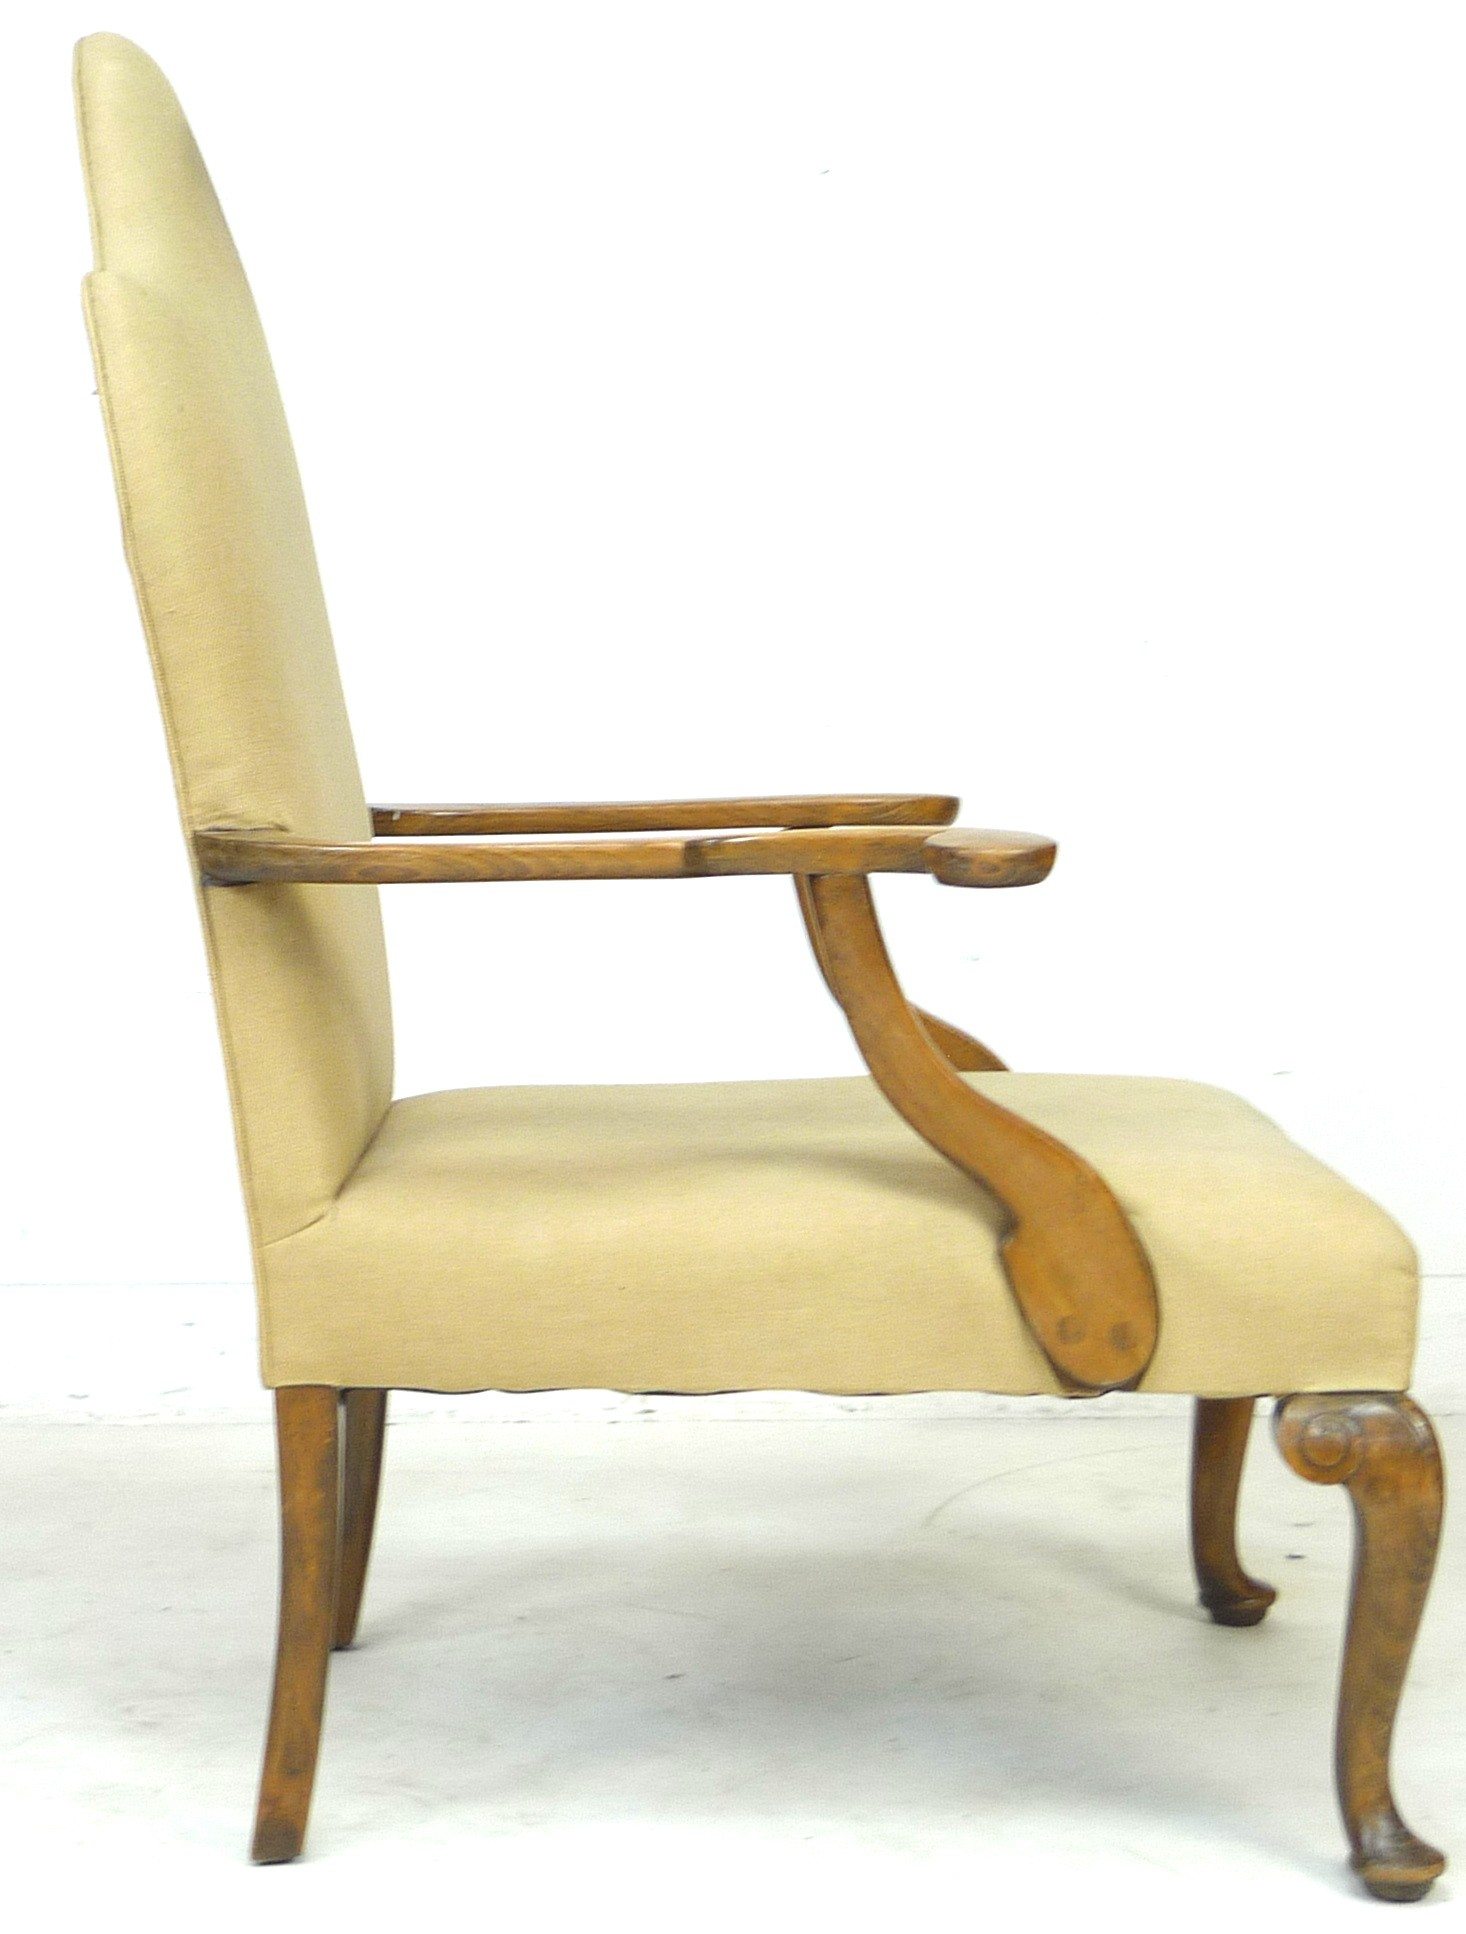 An Edwardian mahogany open armchair, in Queen Anne style, upholstered in cream foliate fabric, 72 by - Image 3 of 4